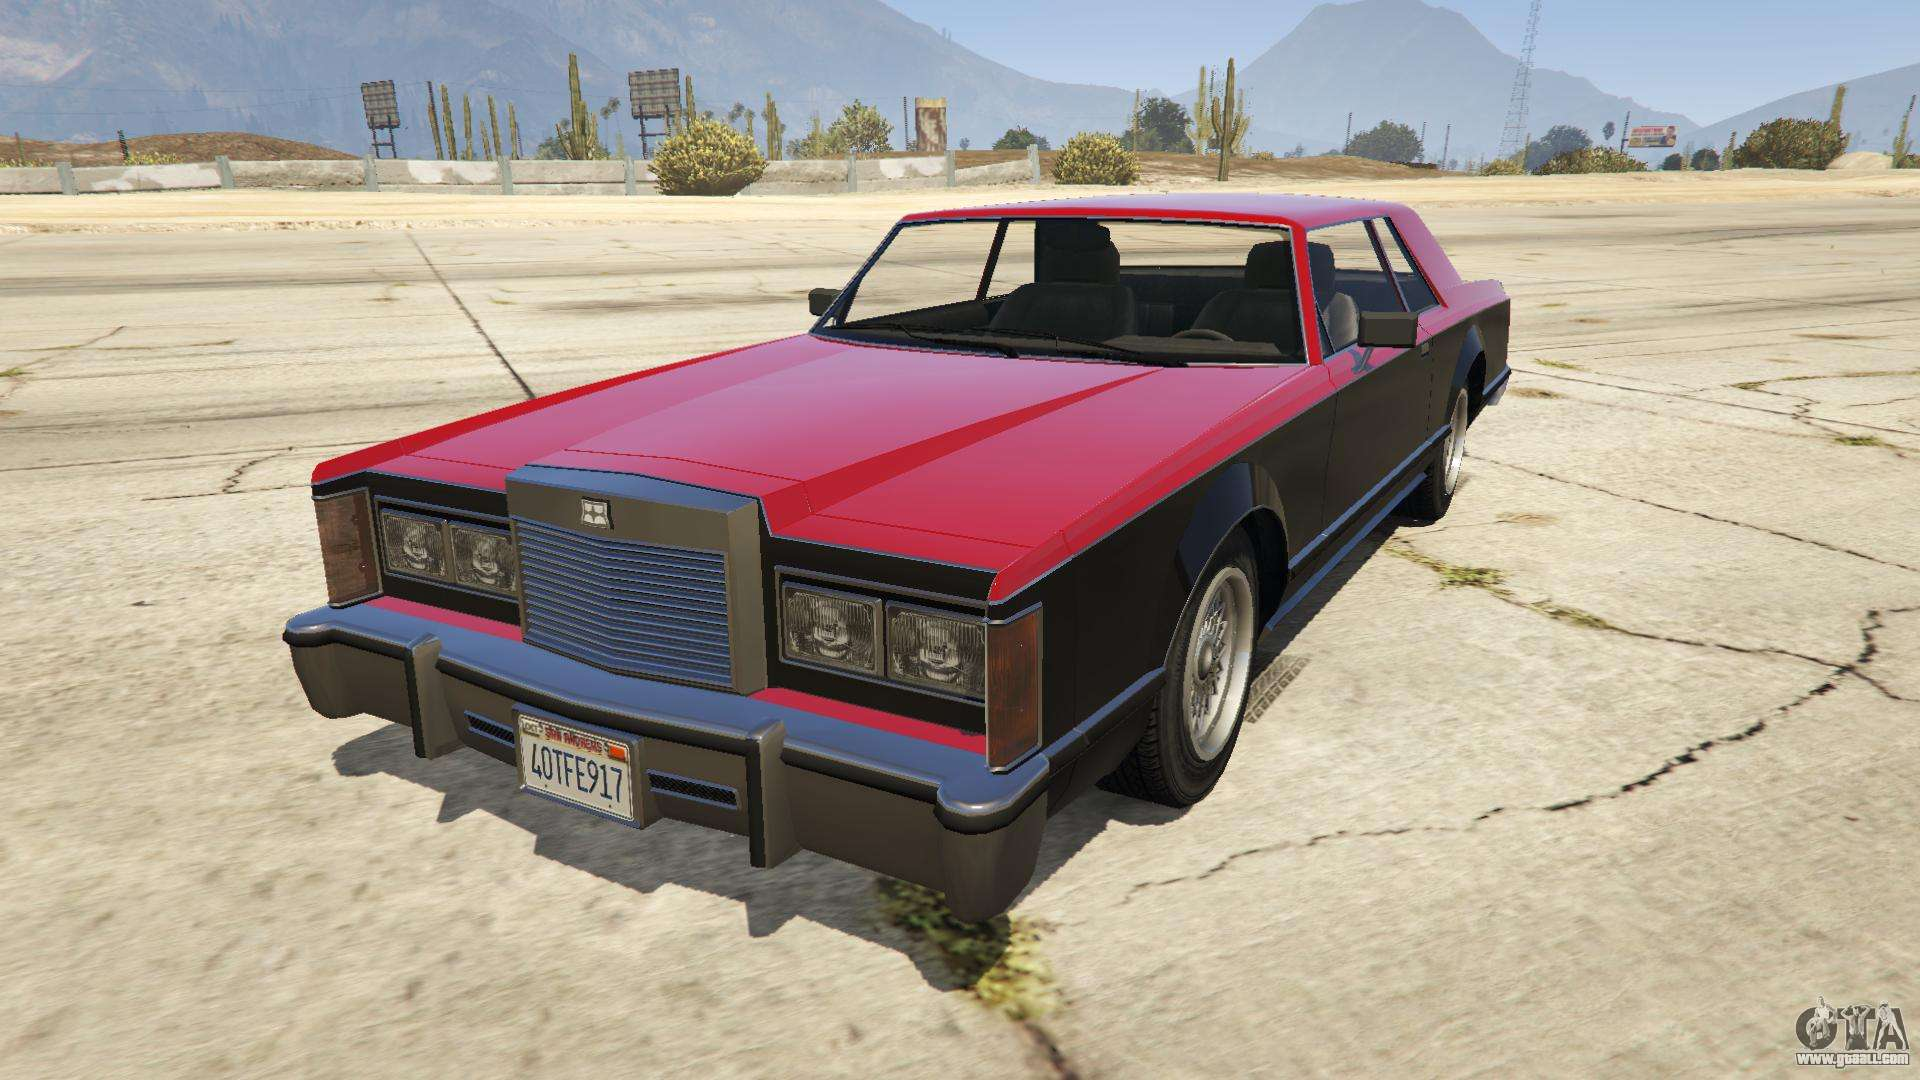 Customize Cars Pc Game